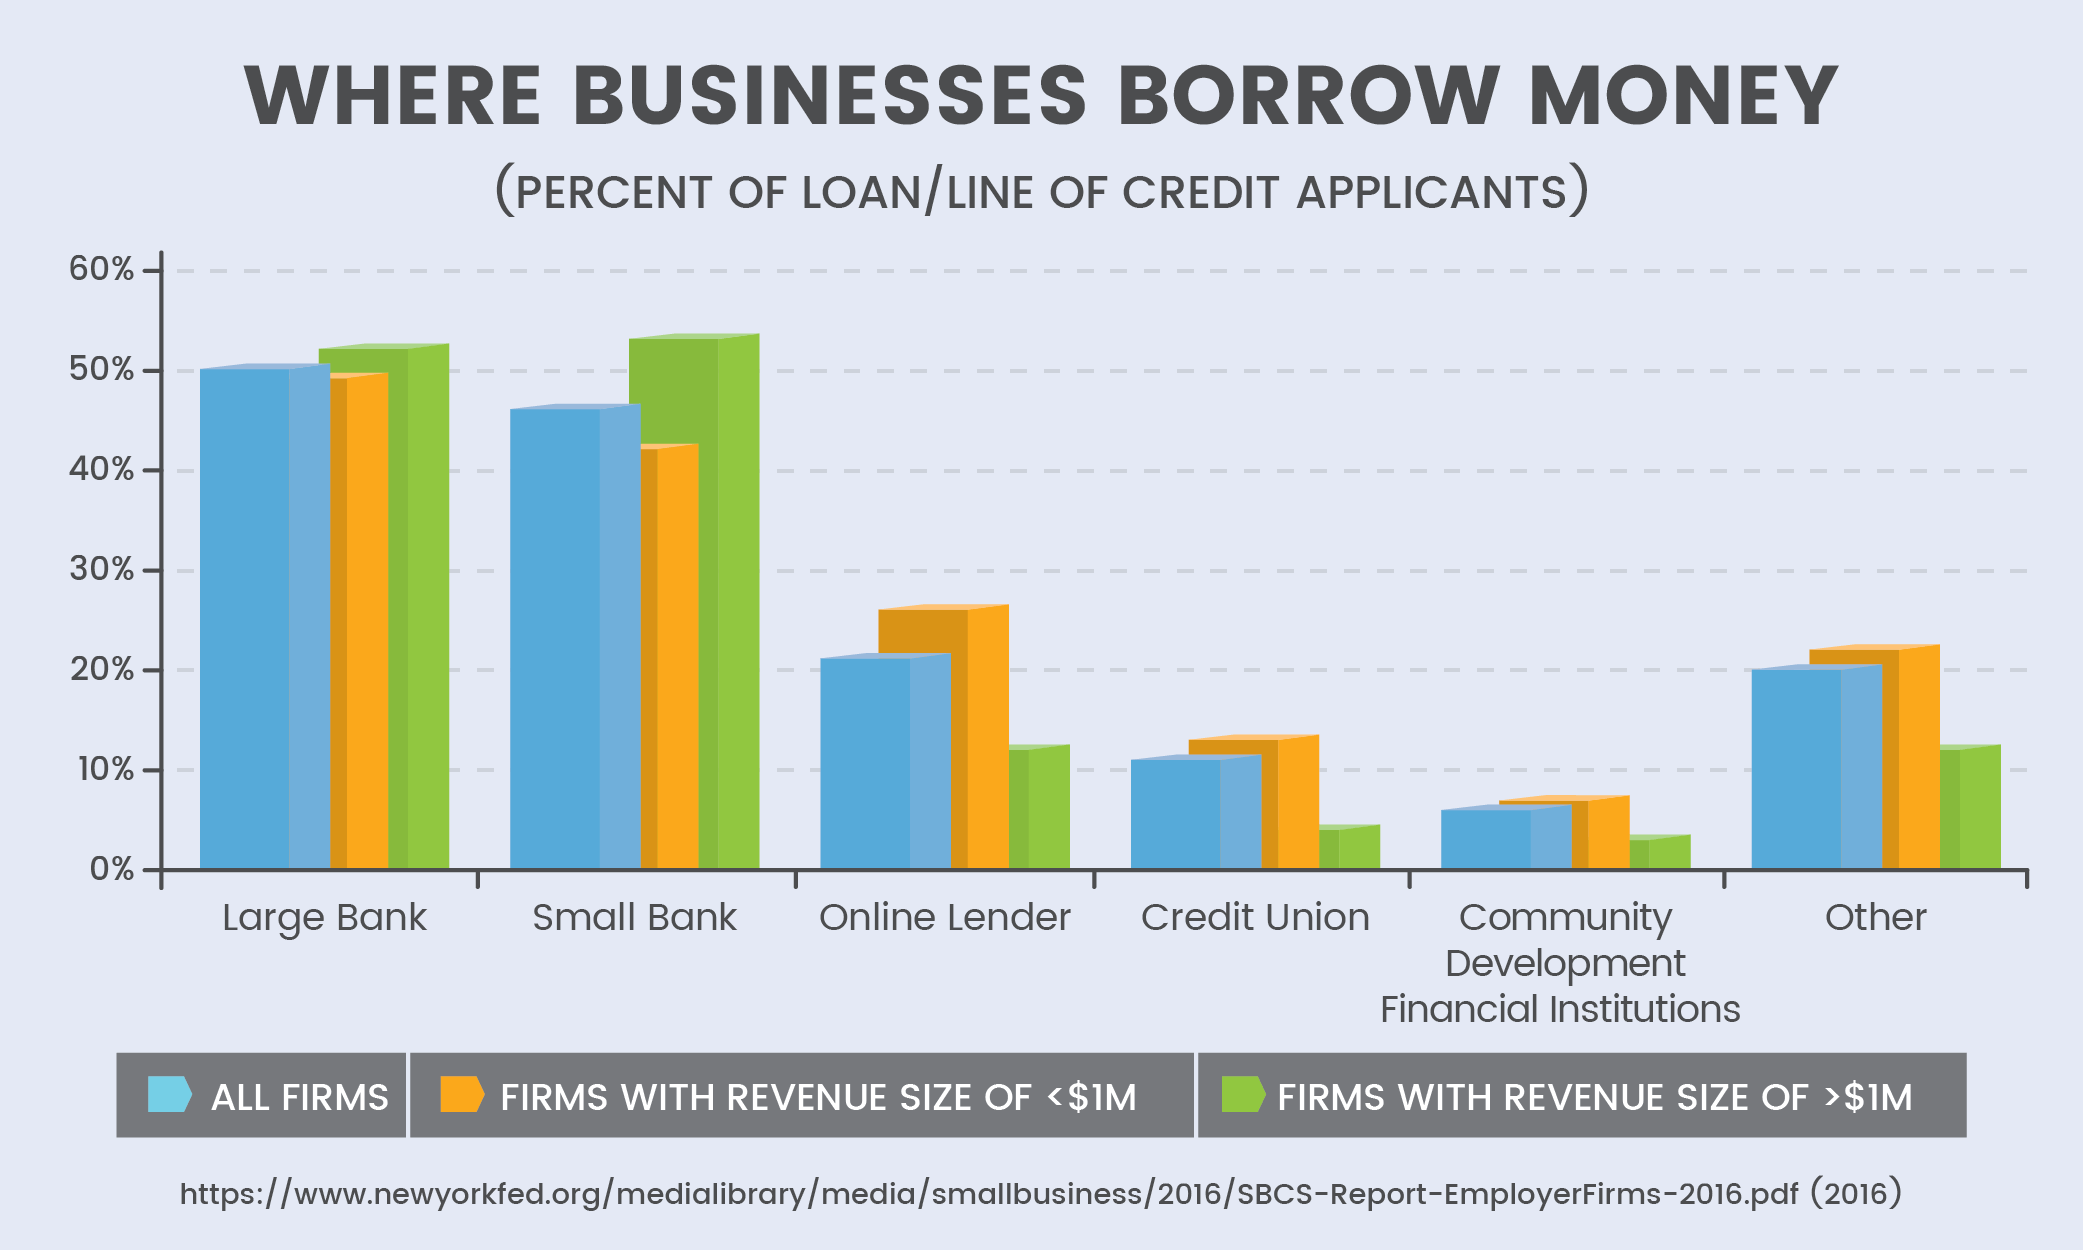 Where Businesses Borrow Money